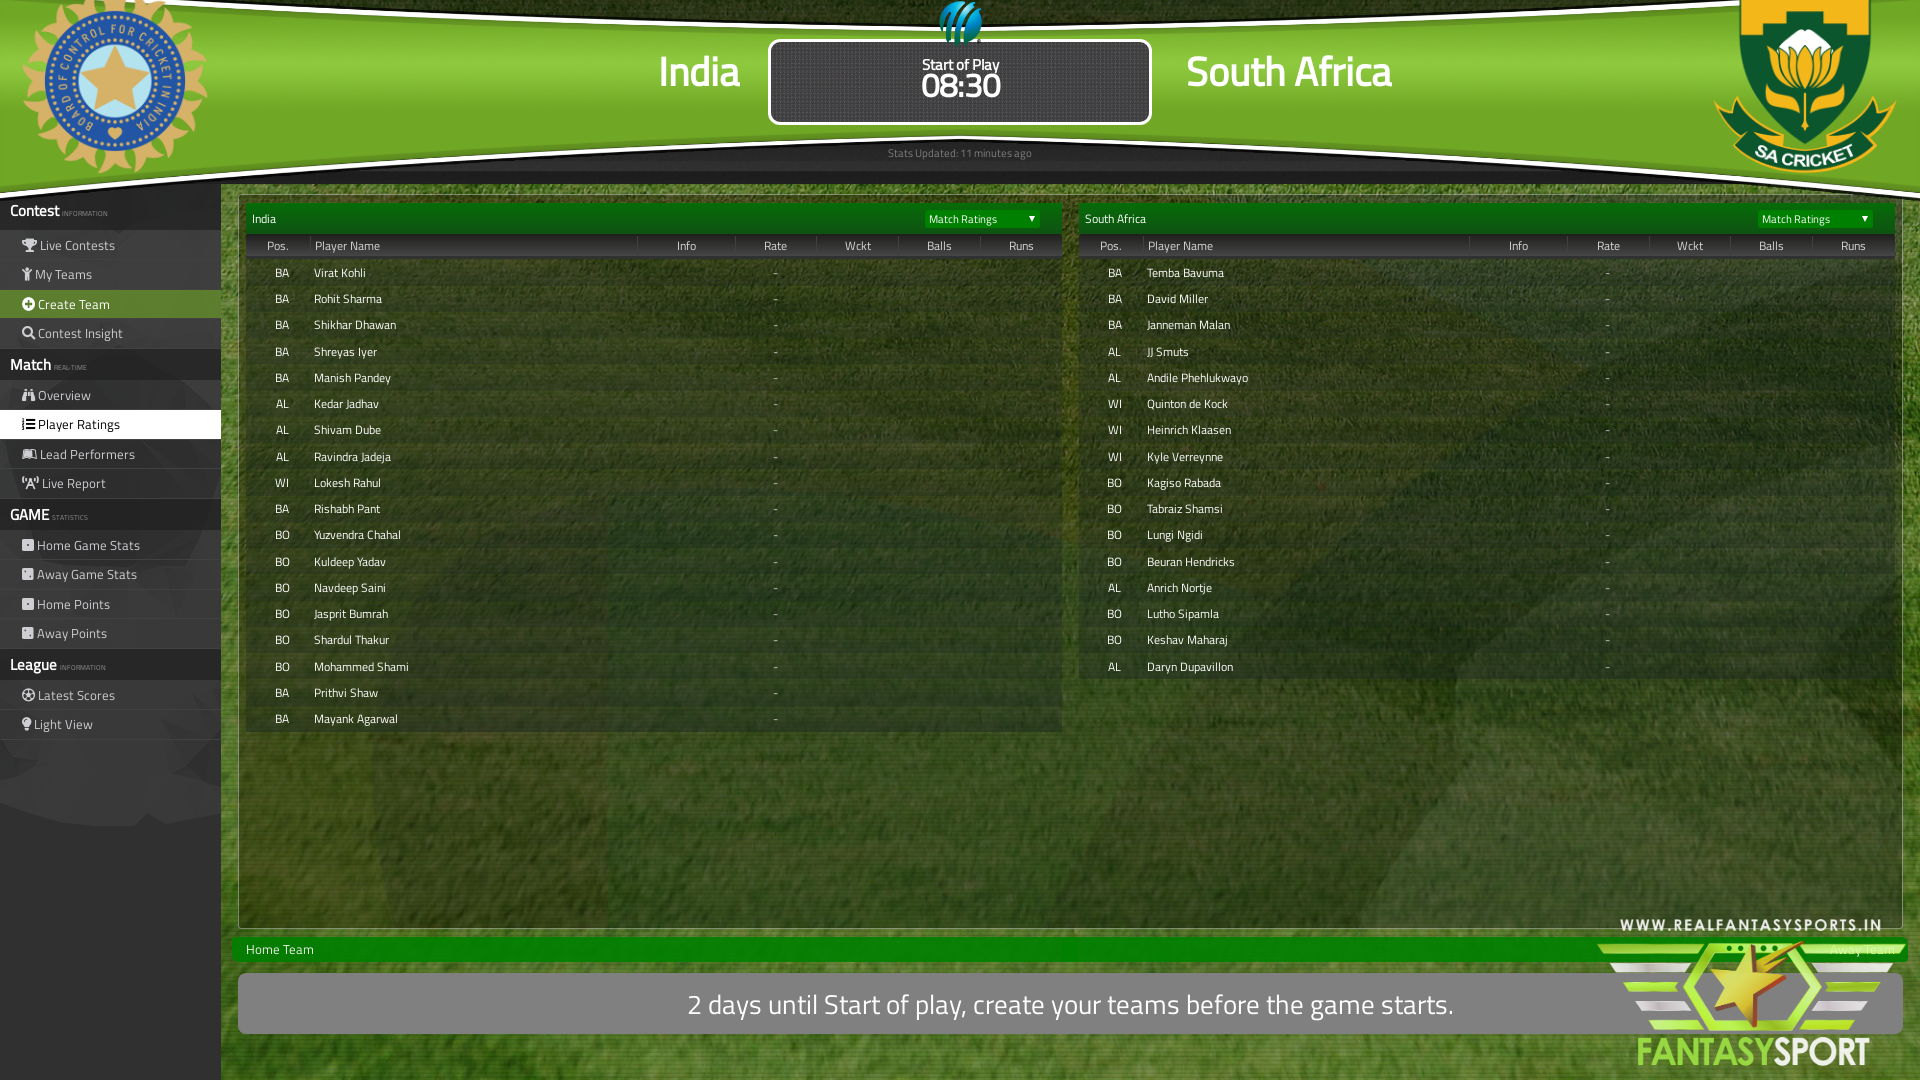 Fantasy Cricket India Vs South Africa Thursday 12th March 2020